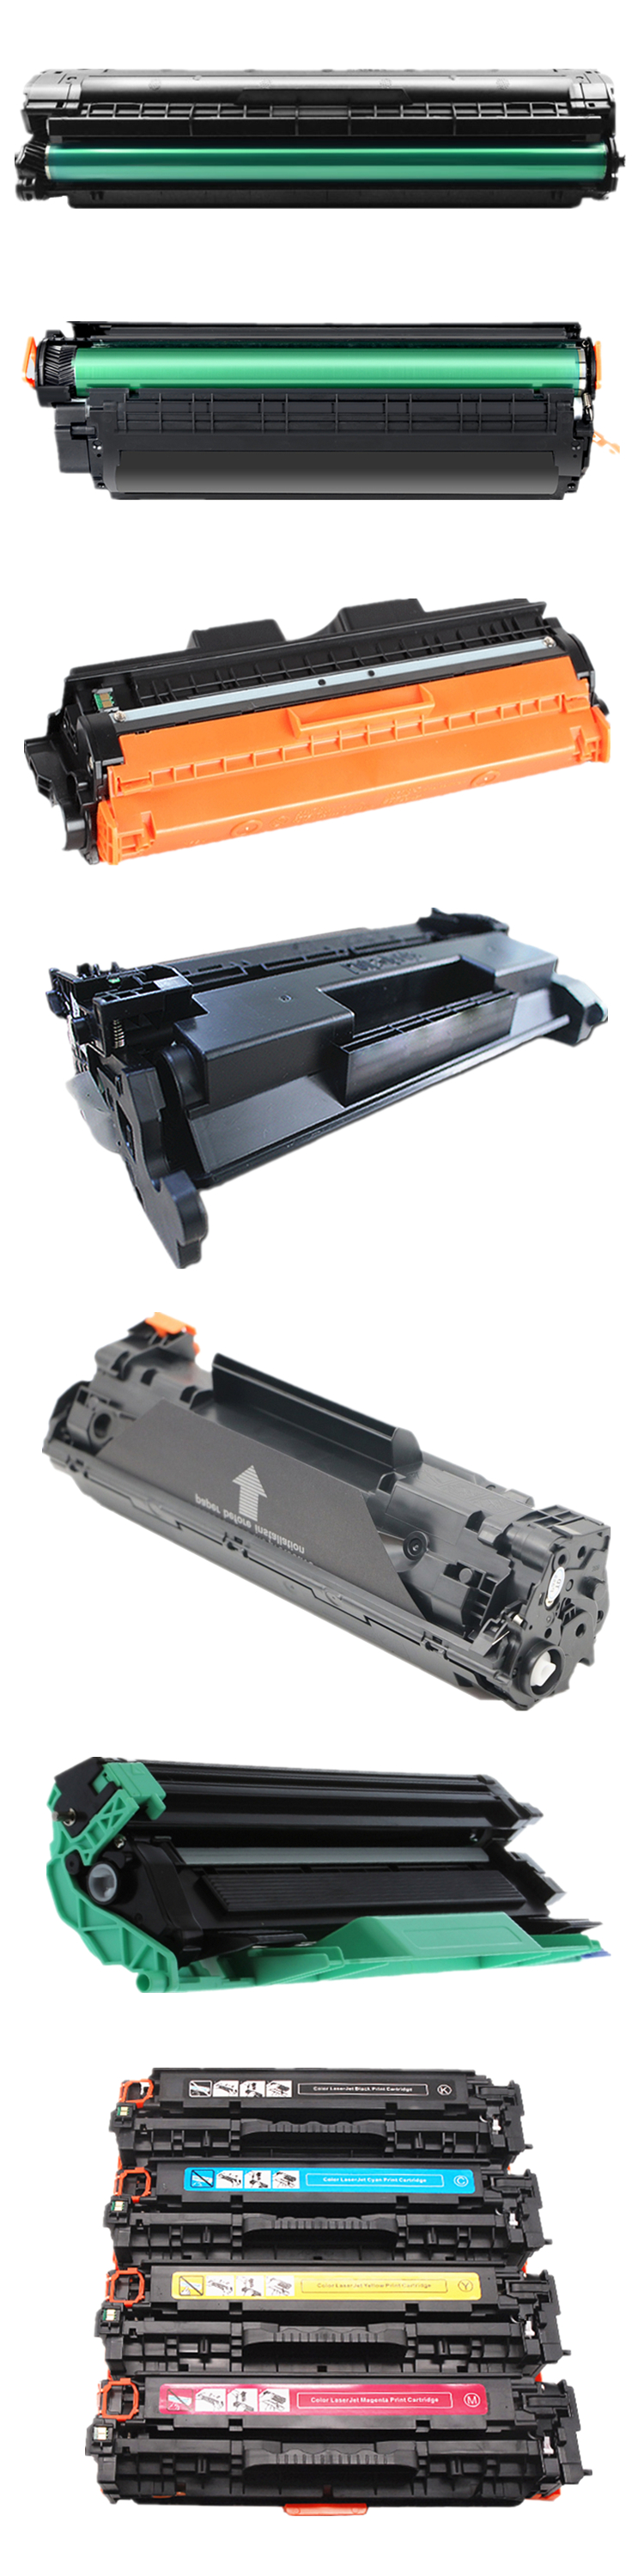 China Manufacturer Compatible Color LaserJet Printer Laser Ink Toner Cartridge Price 12A 85A CF287X 655A 105A 35A TN850 MX310